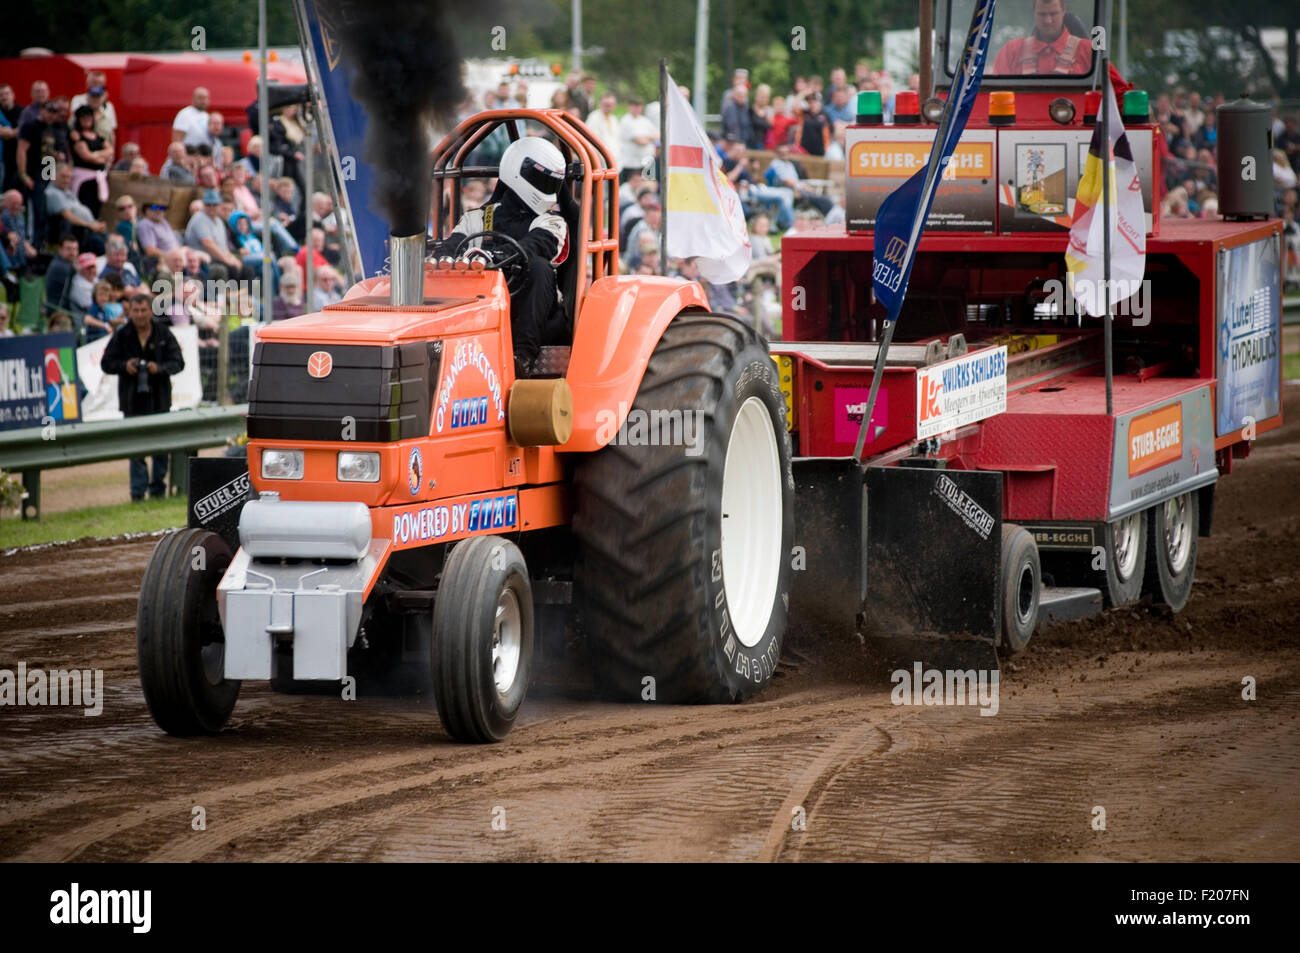 diesel tractor photos diesel tractor images alamy. Black Bedroom Furniture Sets. Home Design Ideas